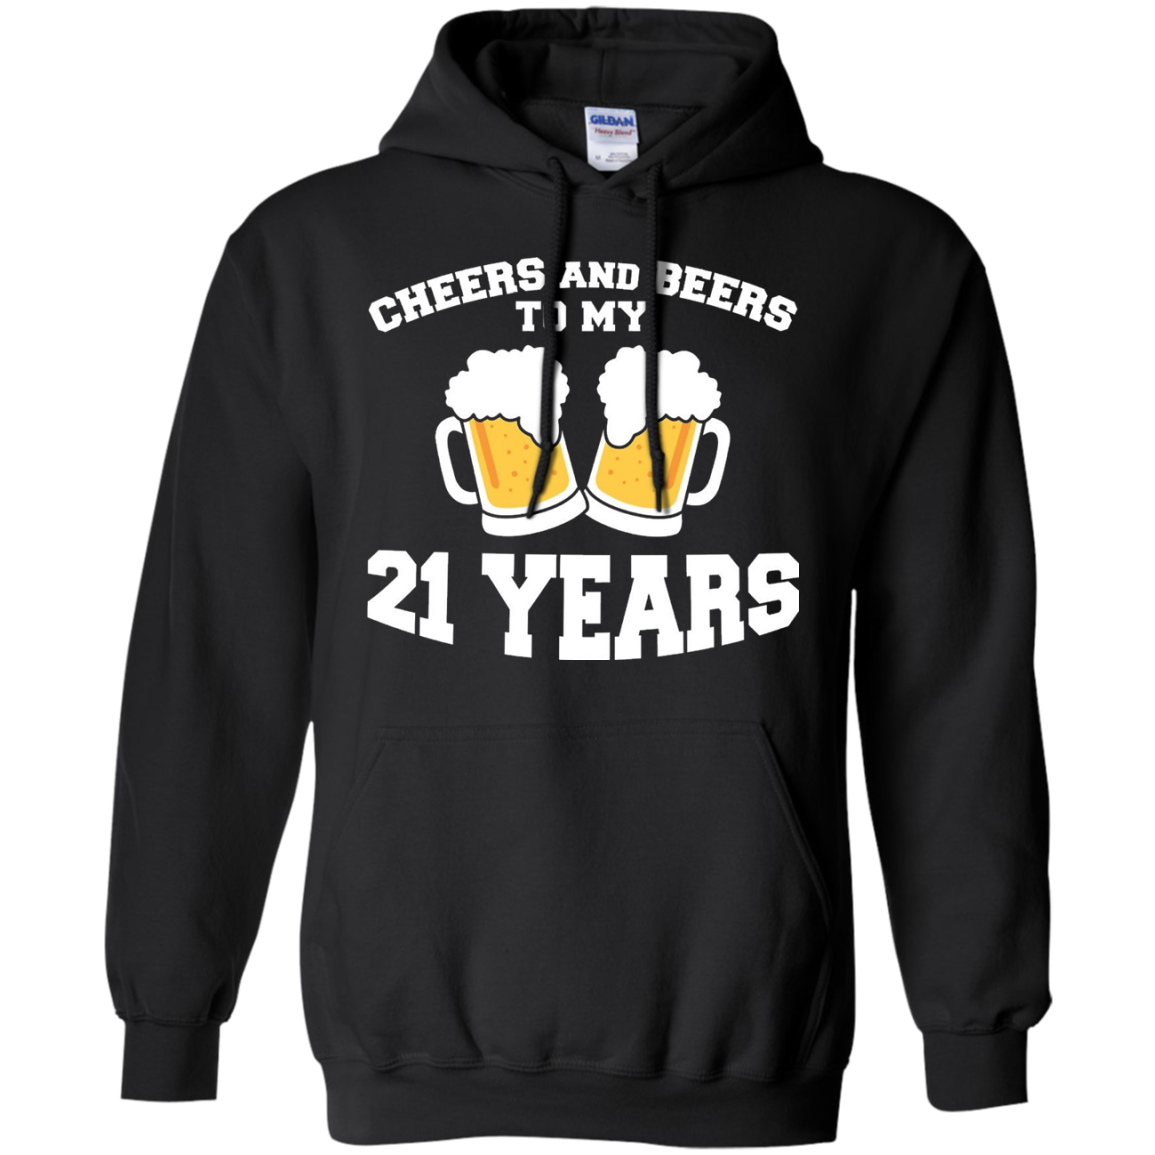 Cheers And Beers To My 21 Years, Funny Birthday Shirts